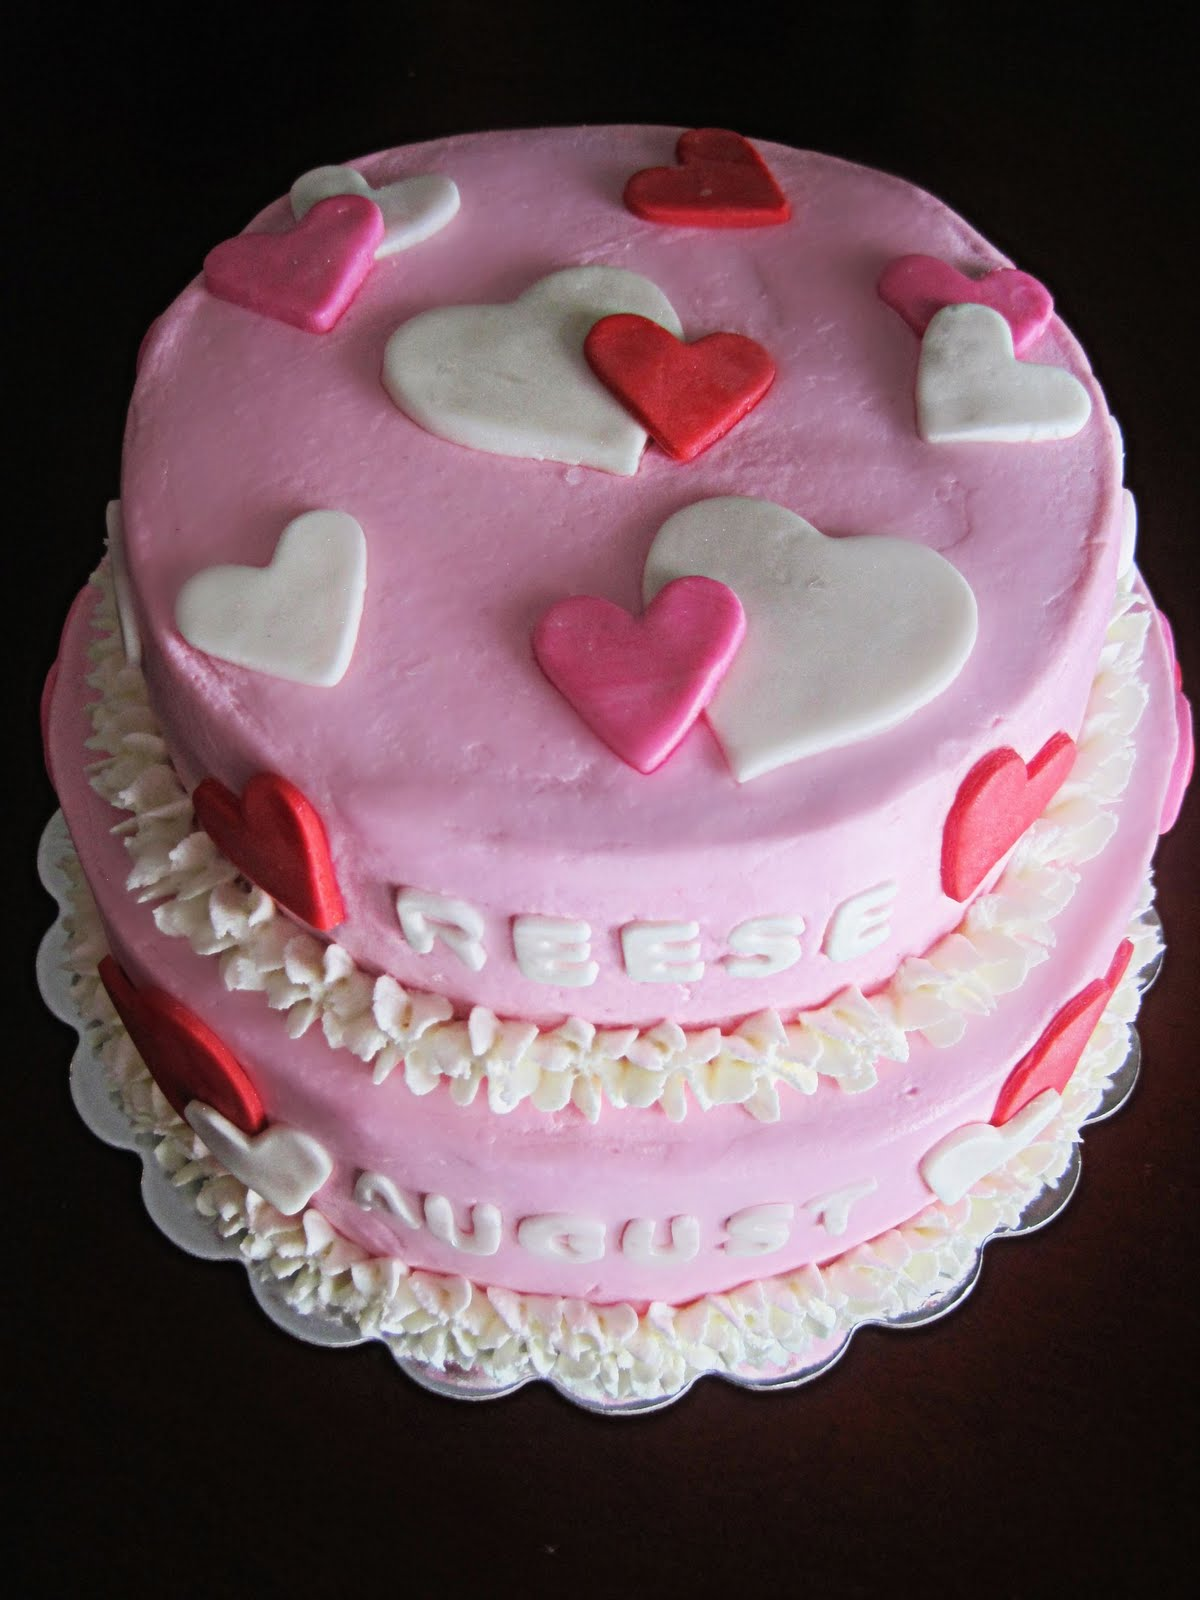 Valentine Cakes From Giant Eagle Birthday Photo Cake Jpg 1200x1600